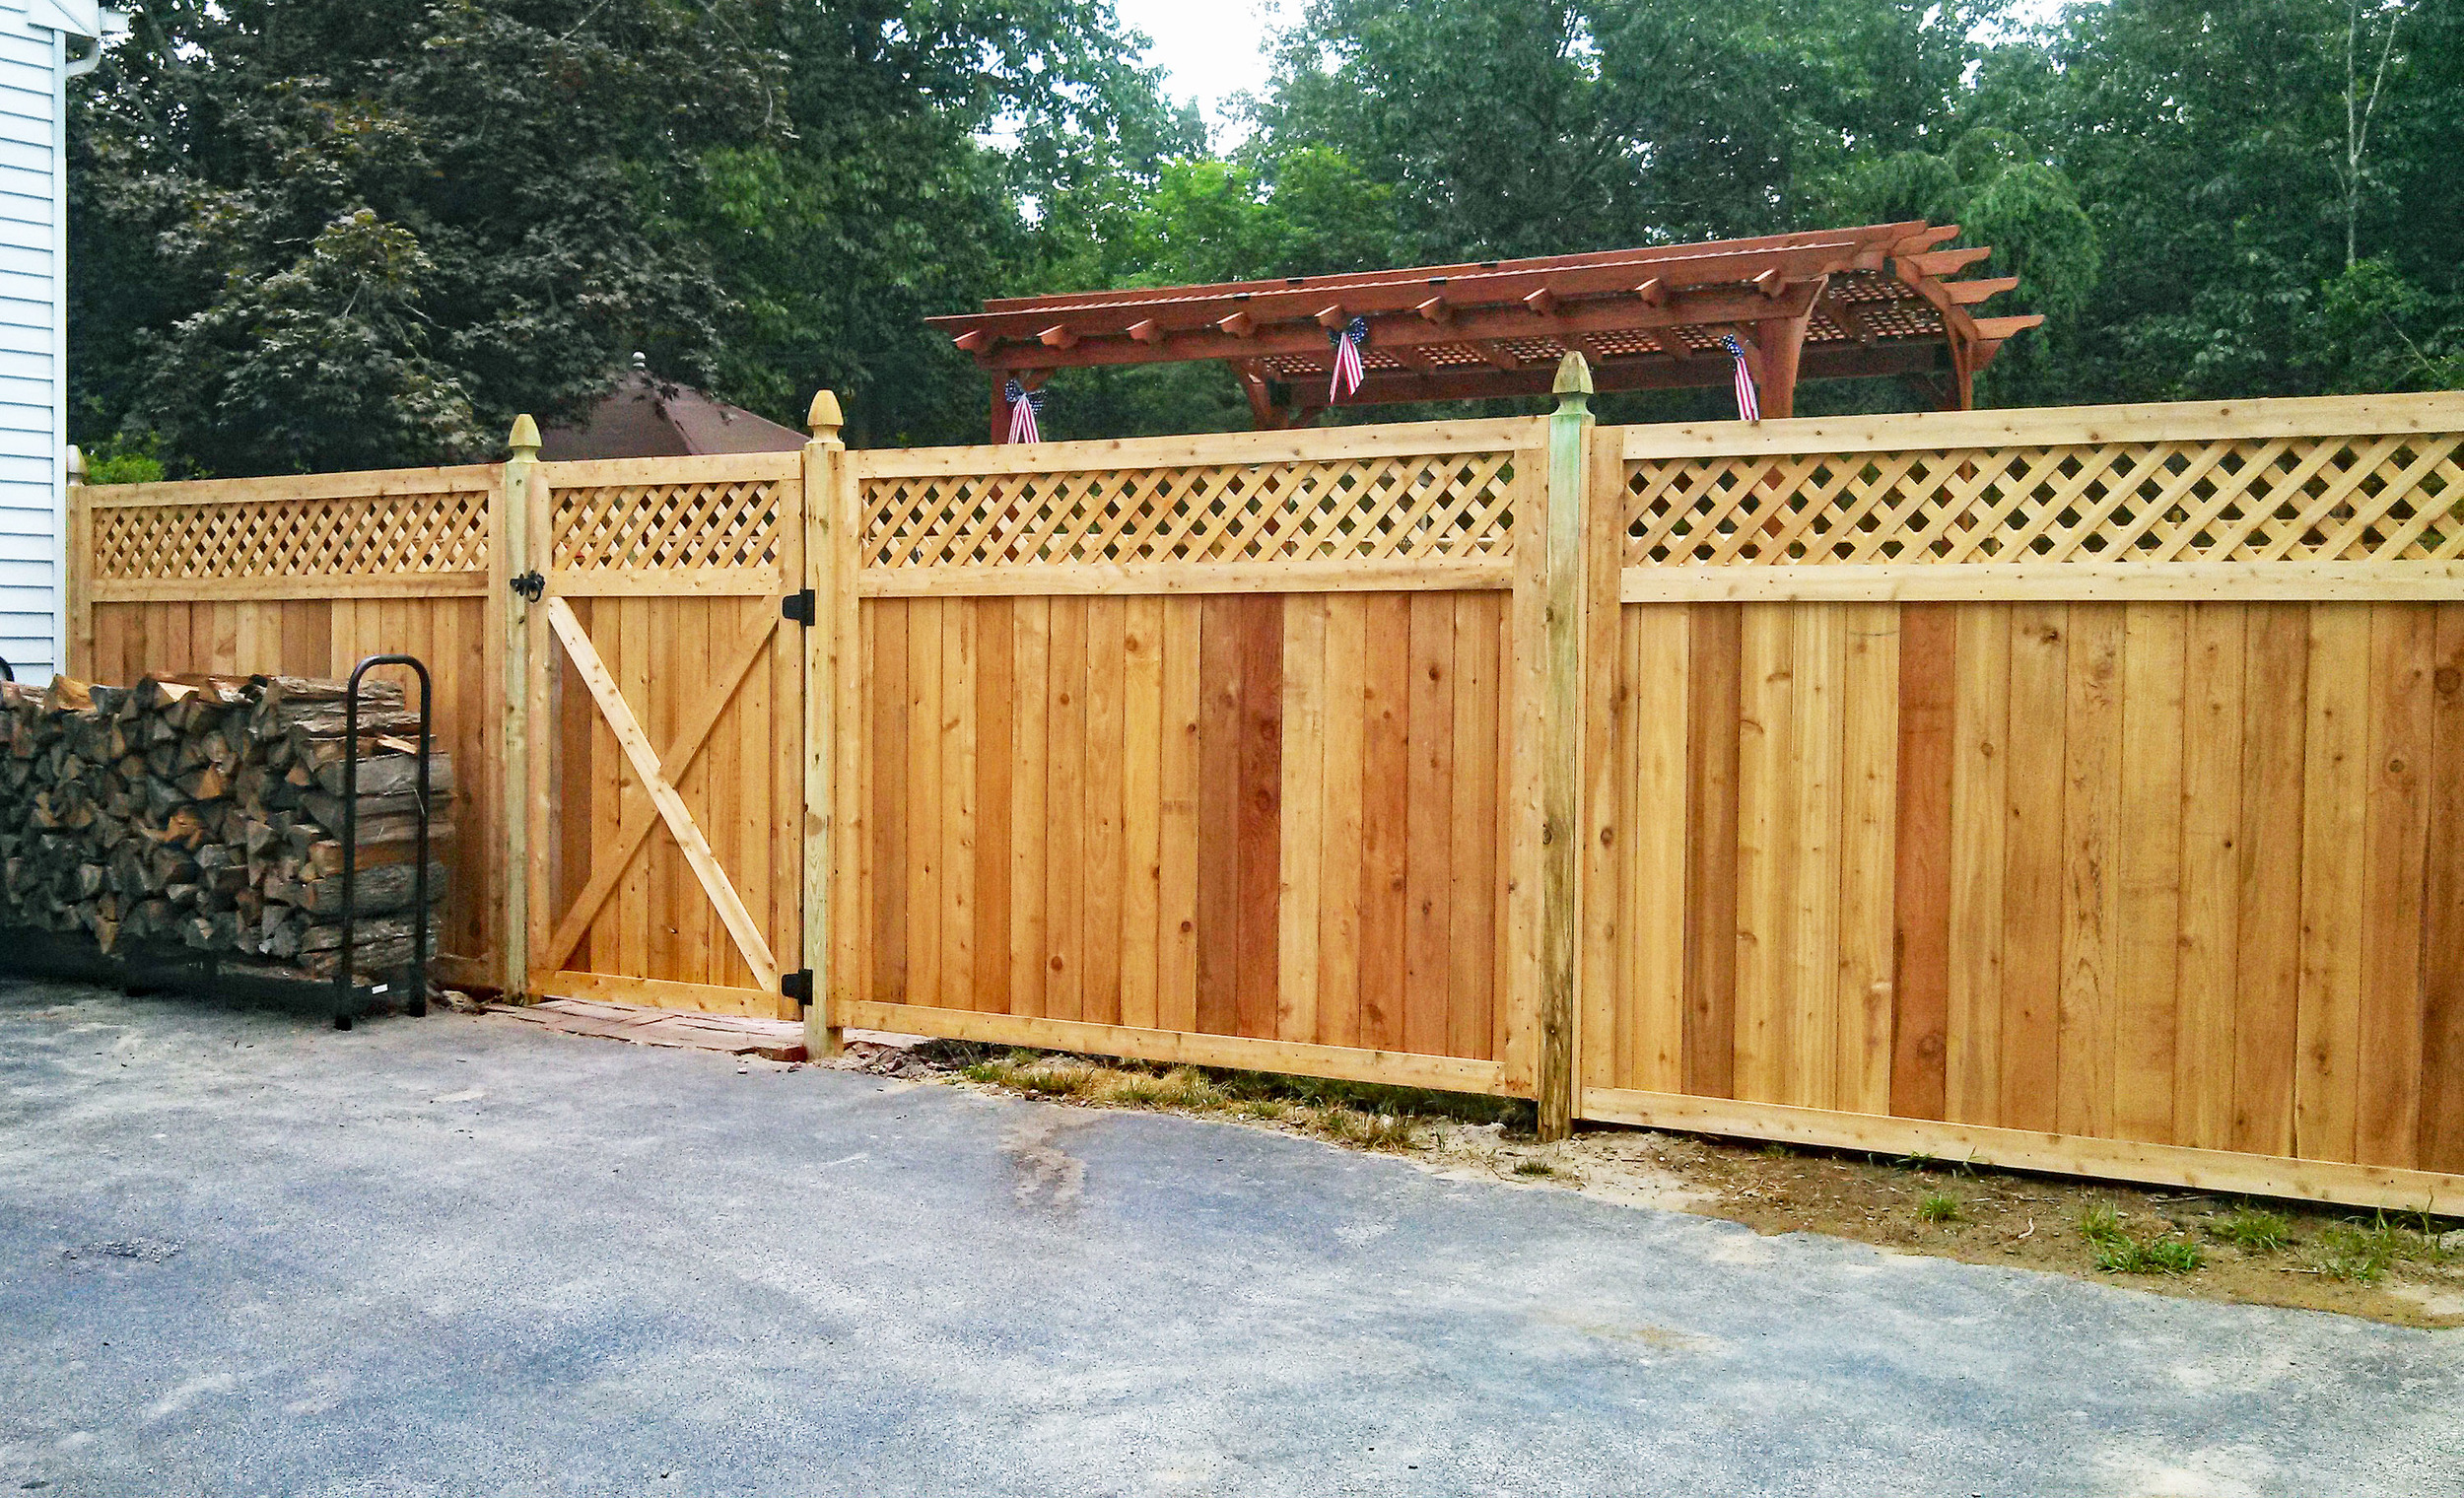 Pressure treated wood fencing New Jersey